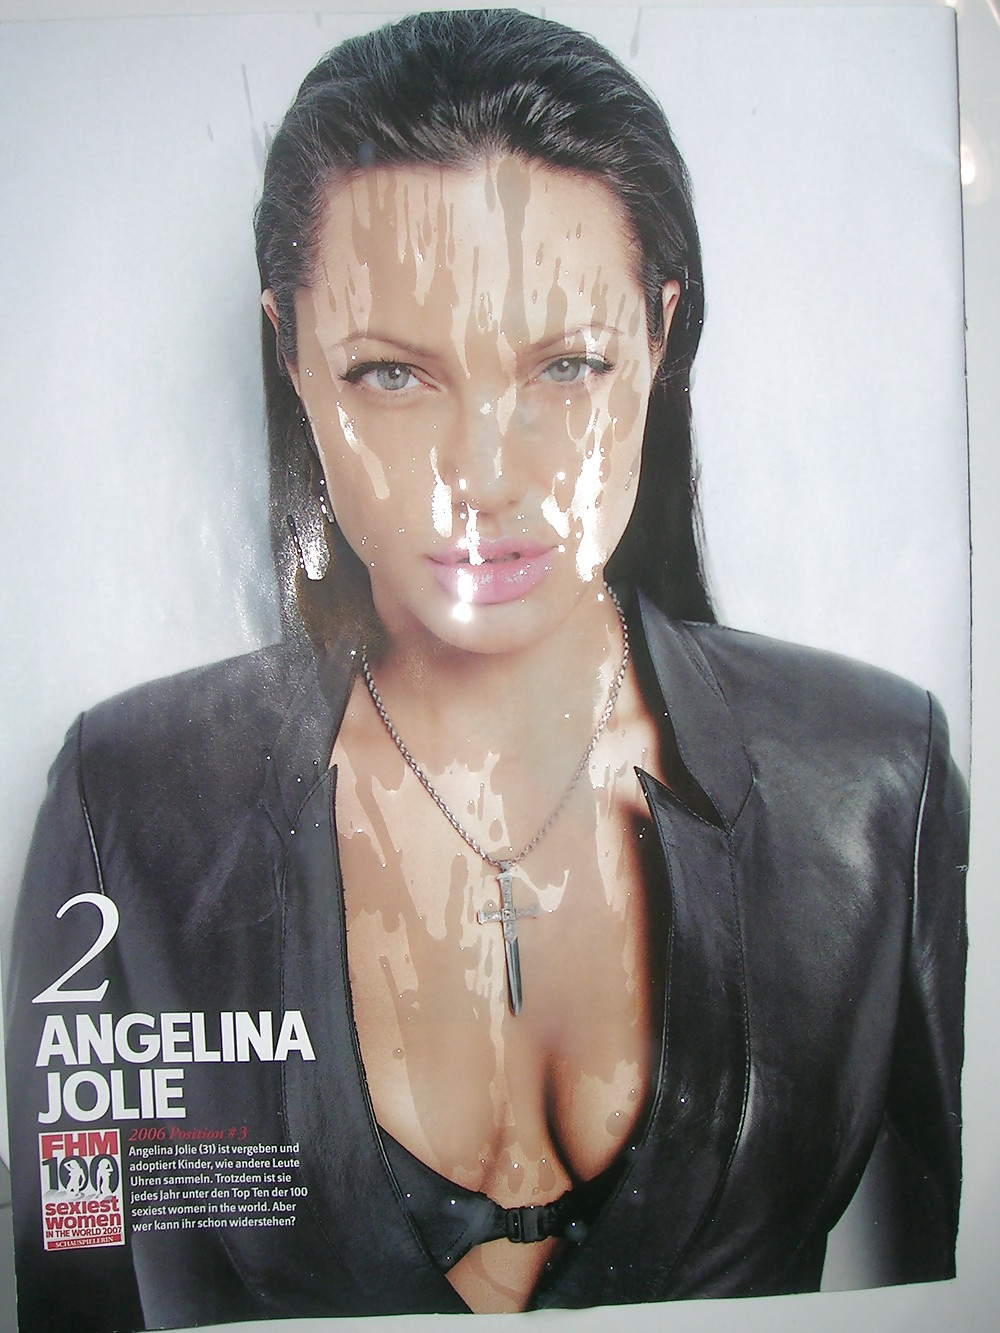 angelina-jolie-naked-with-cum-on-face-natural-cures-for-anal-fissures